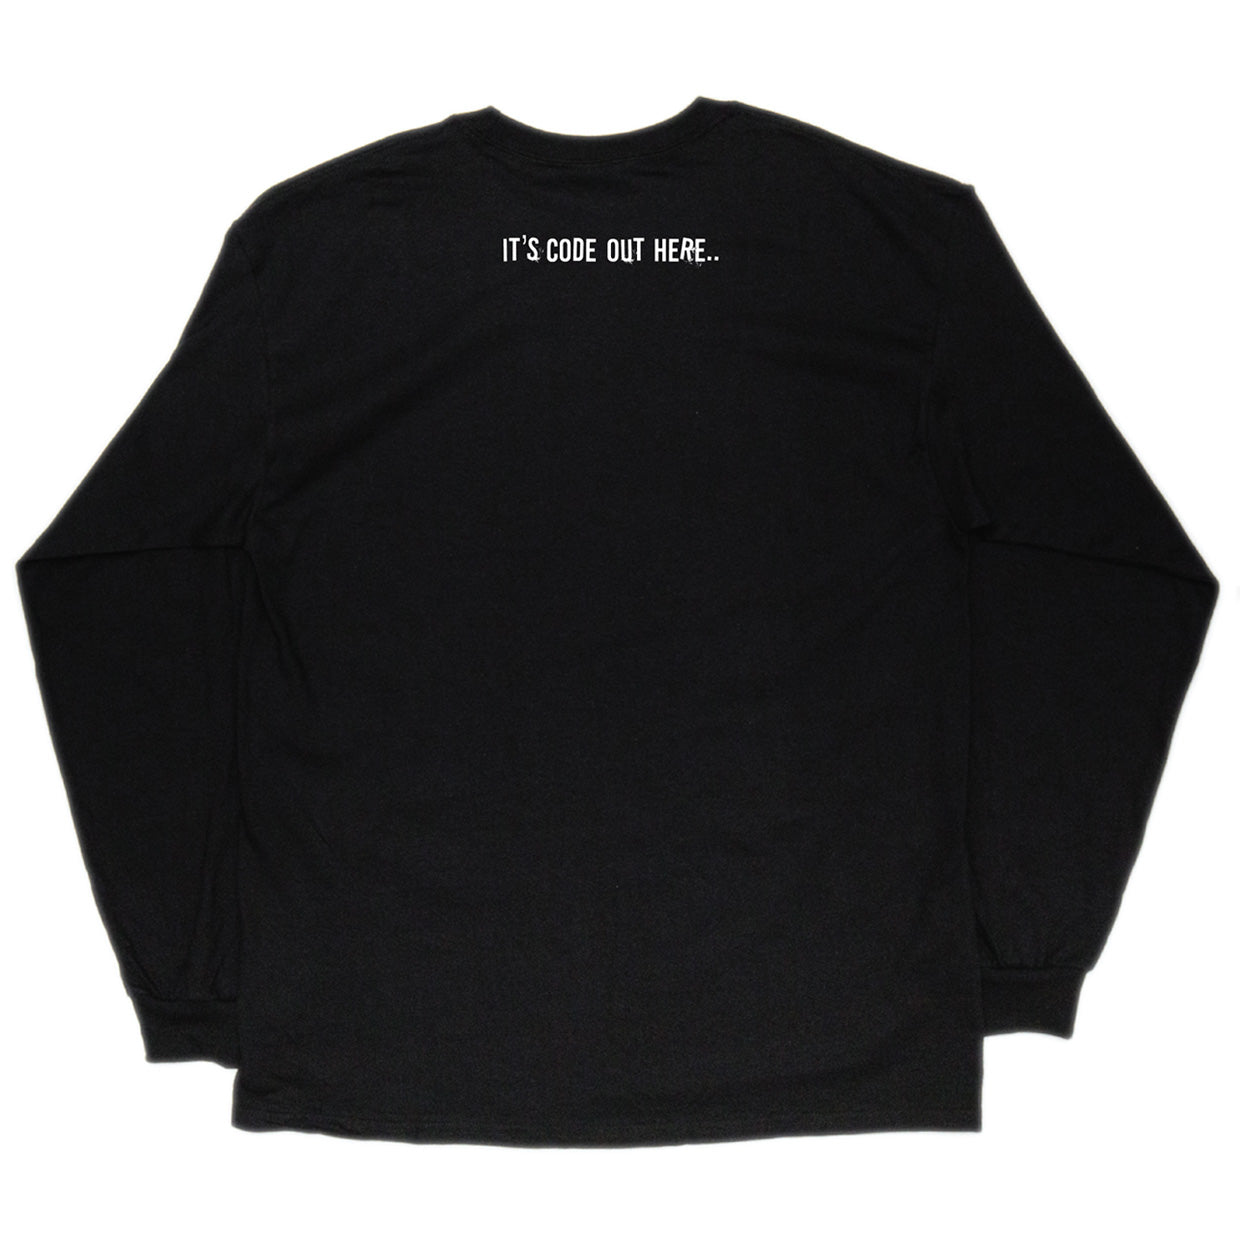 0115 Records - T-Shirts - 0115 x Katana Long Sleeve T-shirt (Black)